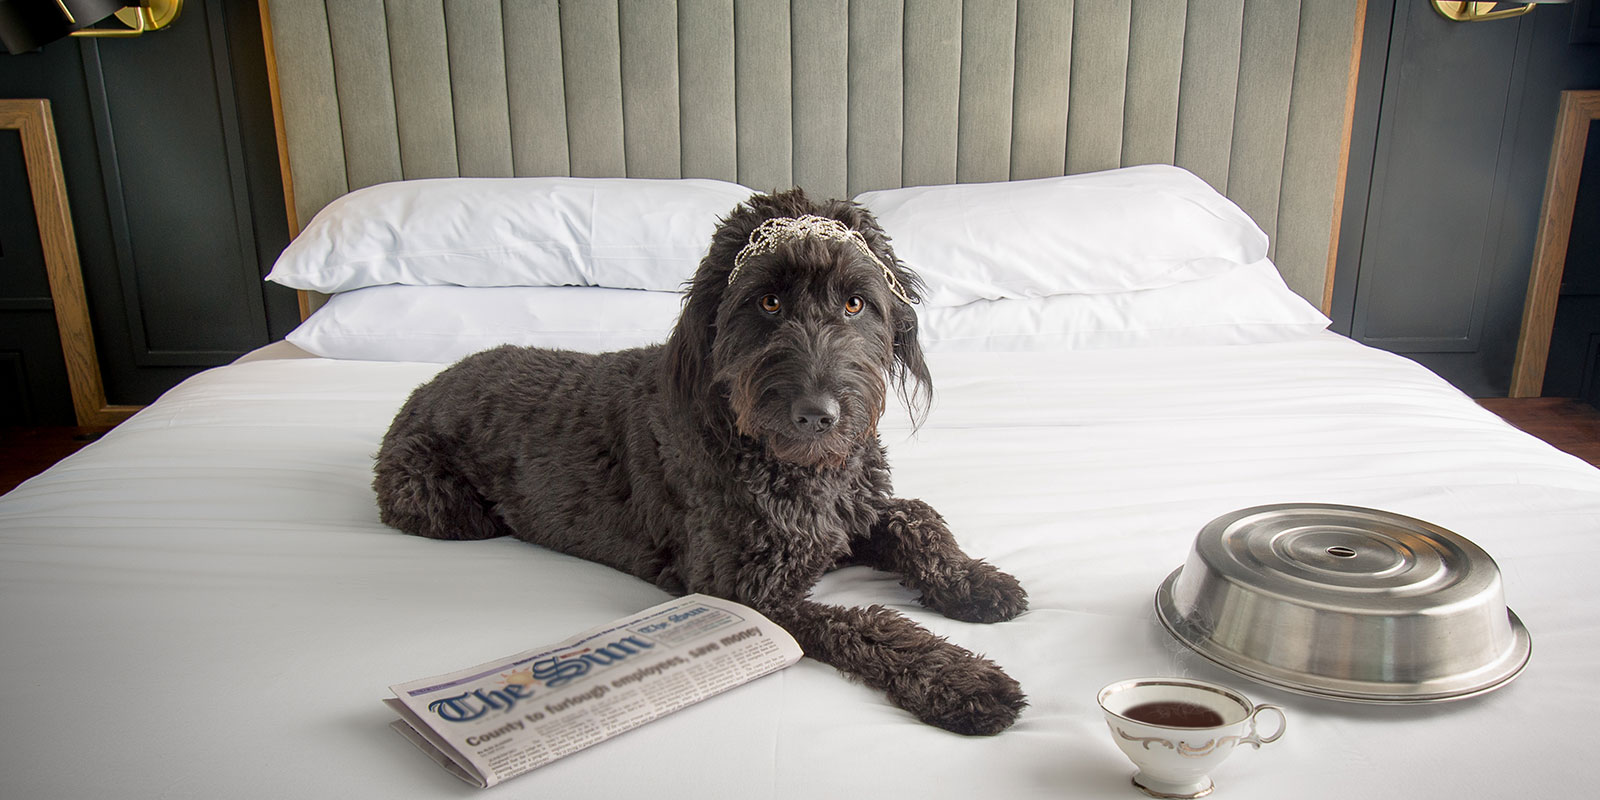 dog lying on bed with newspaper